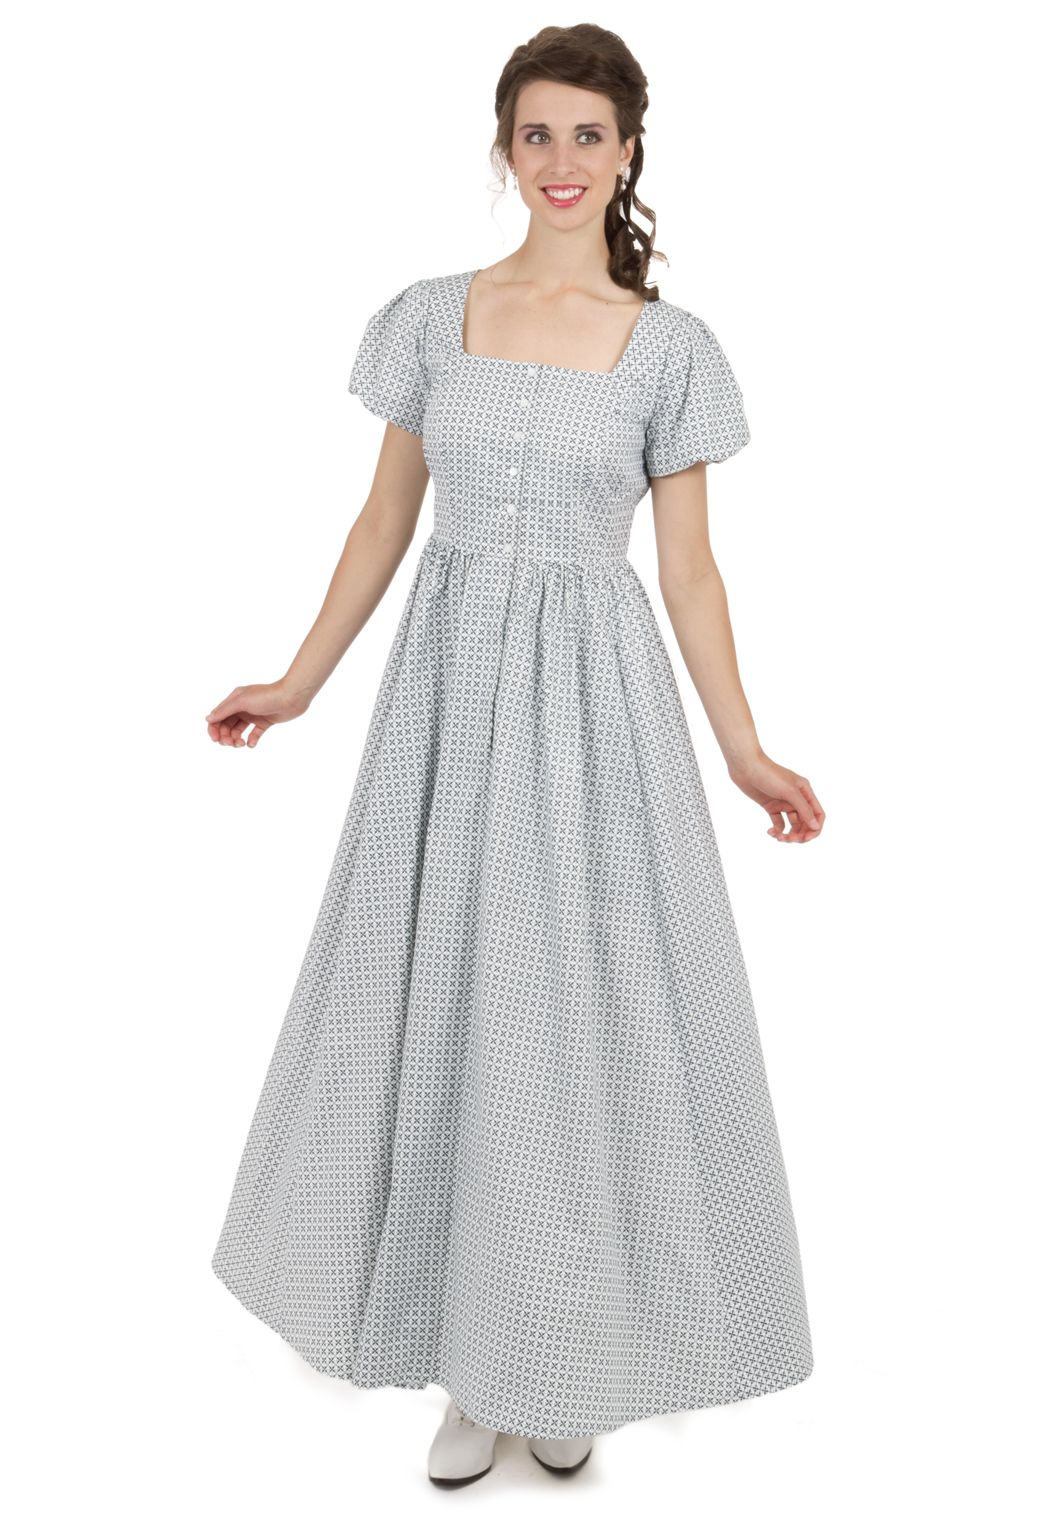 Katharine Victorian Dress By Recollections Dresses Vintage Gowns Clothing Pioneer